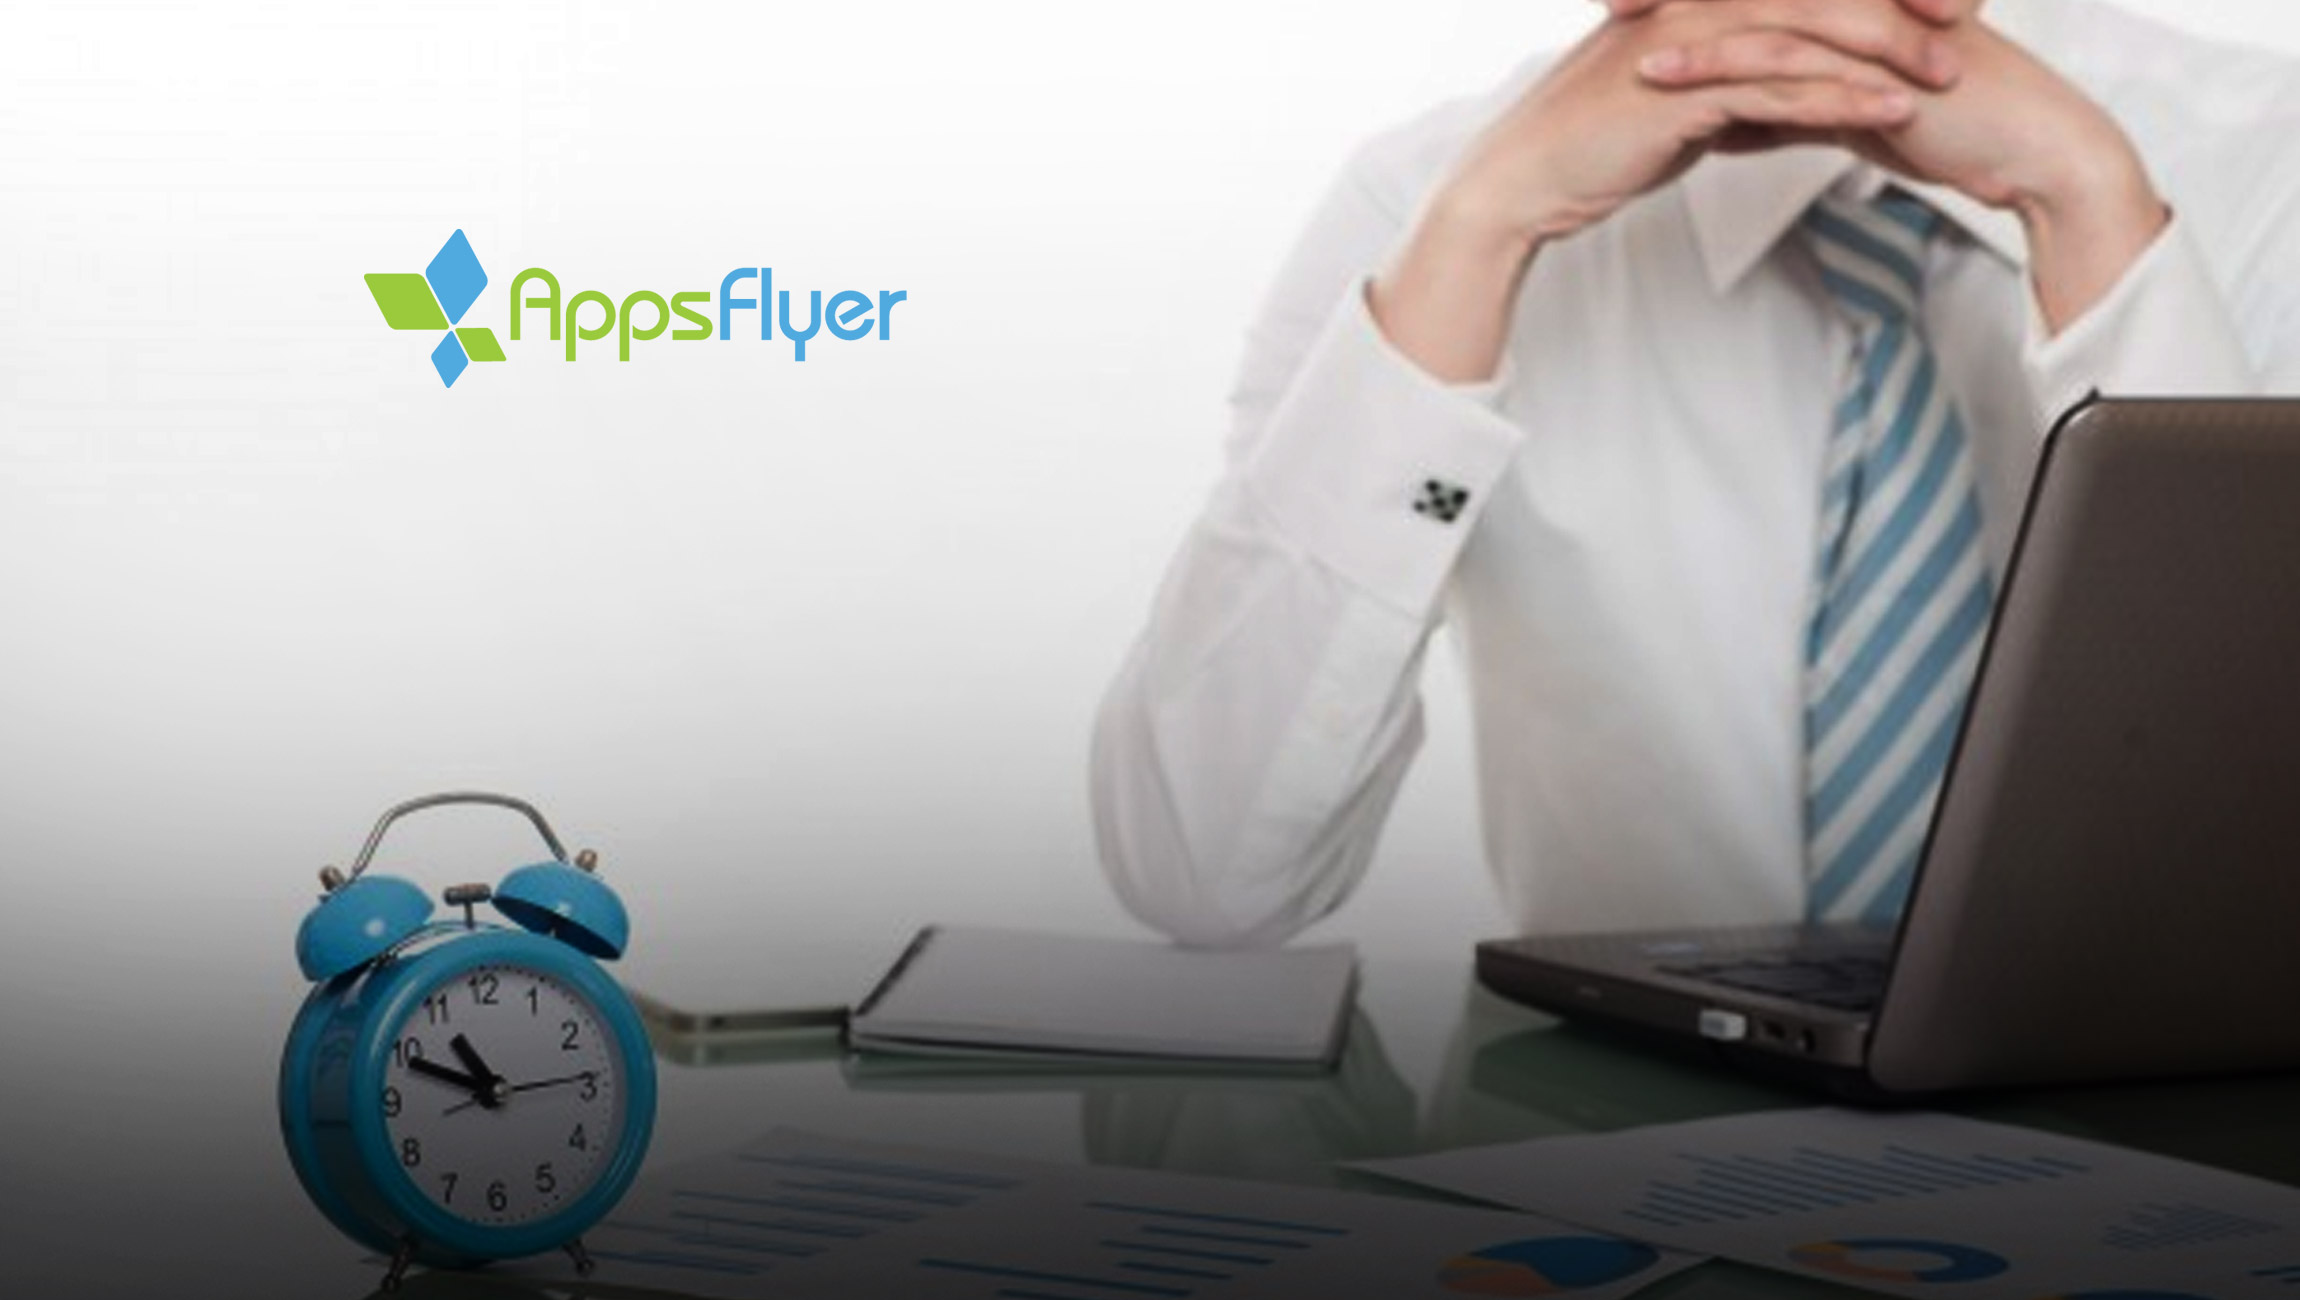 AppsFlyer Integrates With Industry's Leading Campaign Management Platforms to Streamline Marketing Workflows